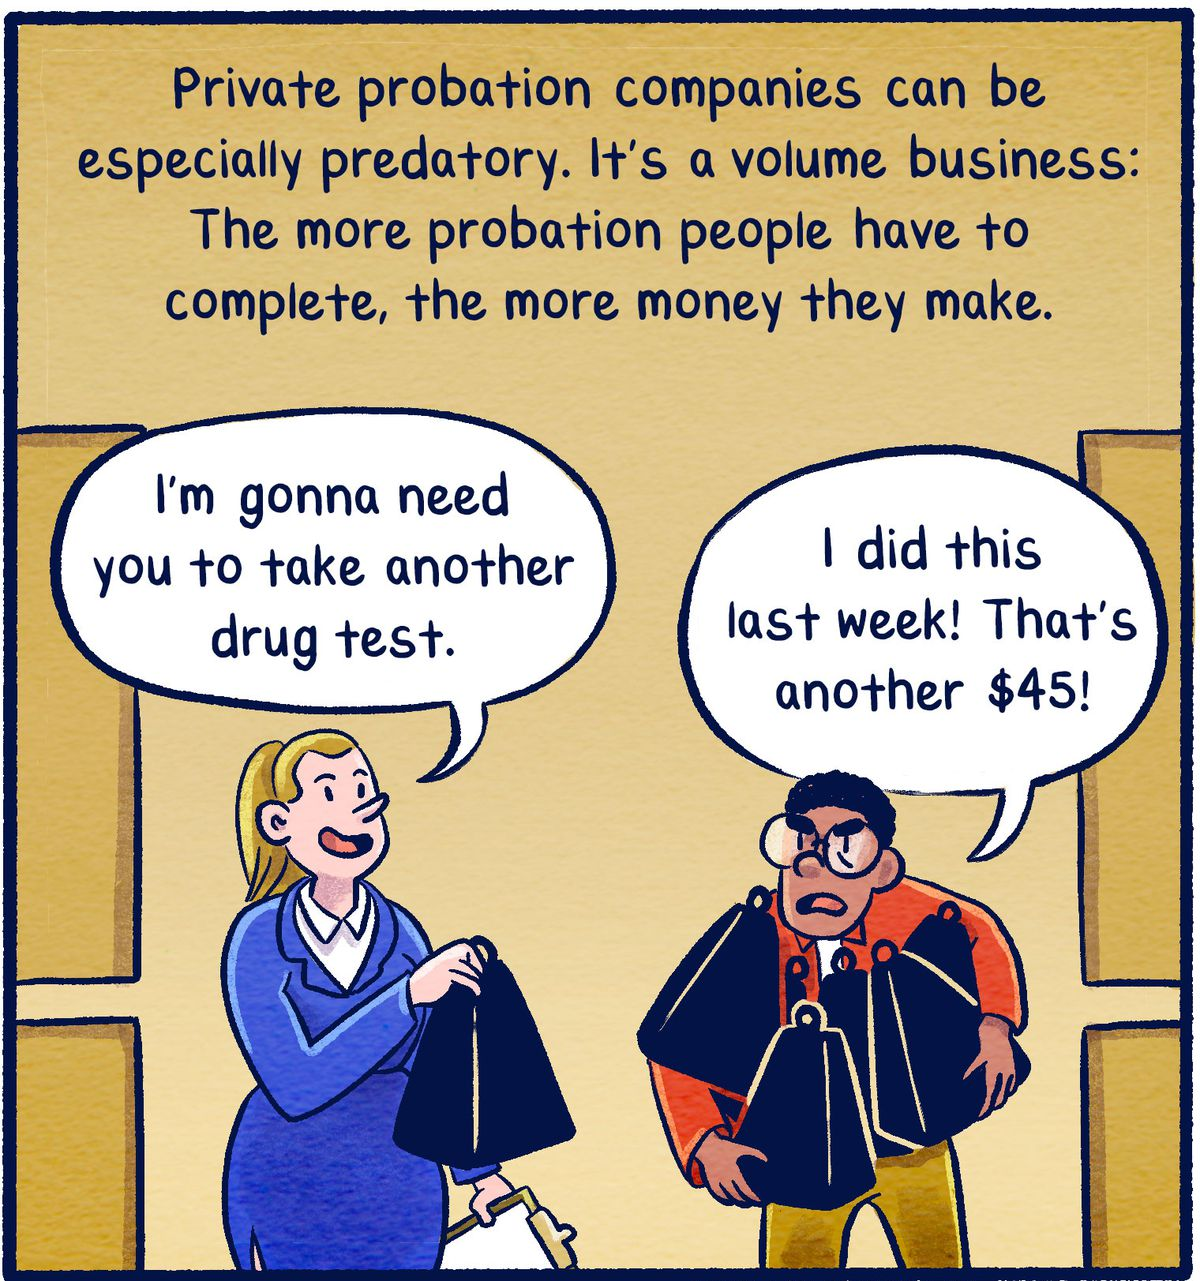 Private probation companies can be especially predatory. Their business is a volume business: The more probation people have to complete, the more money they make.